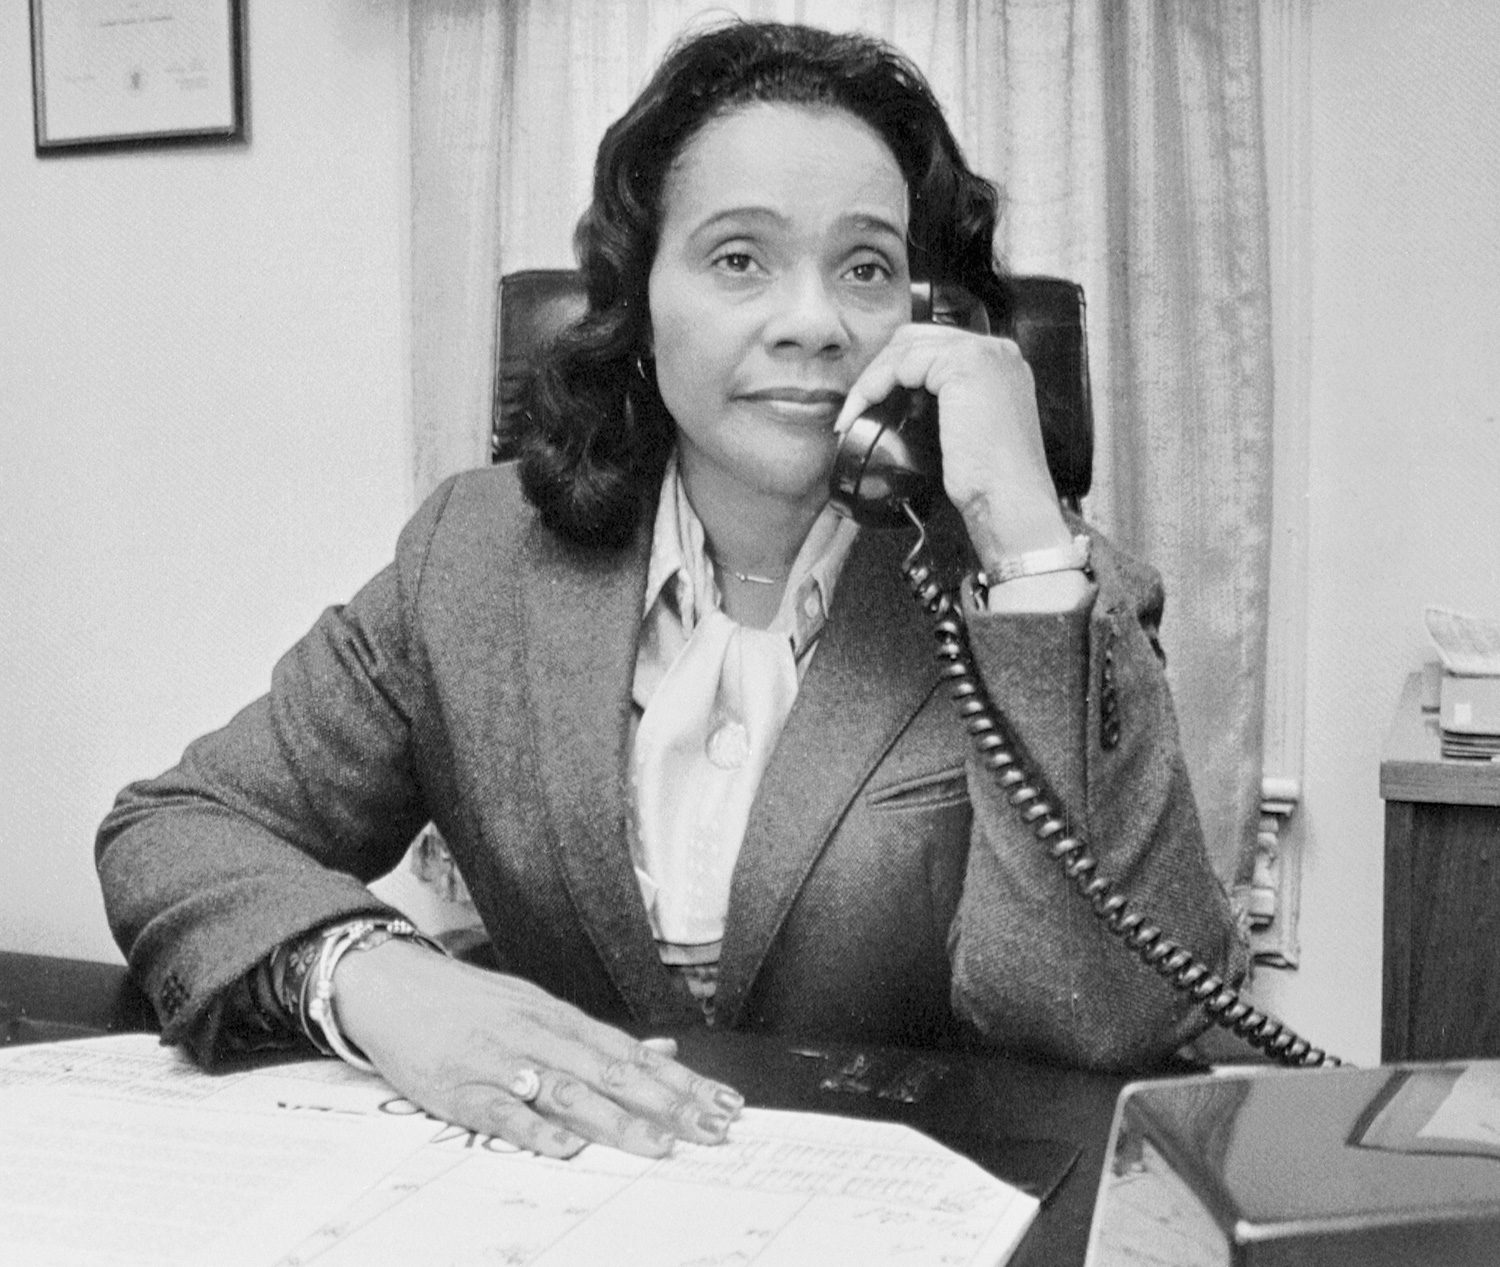 """Coretta Scott King widow of Dr. Martin Muther King Jr., sometimes prefaces a response to a question addressed to her with """"Martin Used to say,"""" But none that know her doubt that she is a leader in her own right"""